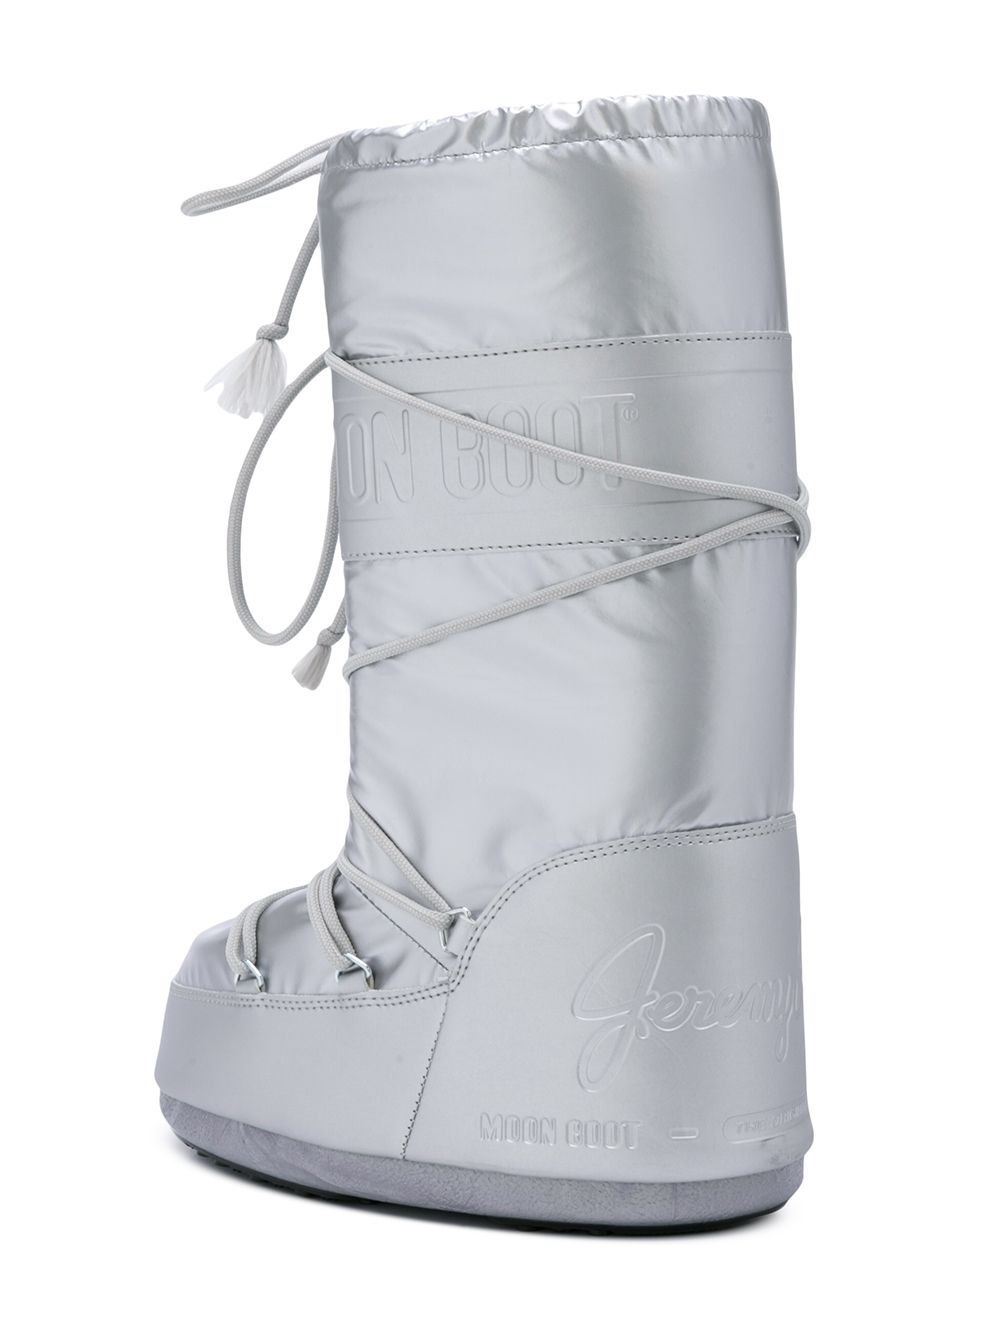 odd92 Jeremy Scott x Moonboot Silver Short Moonboots - 3